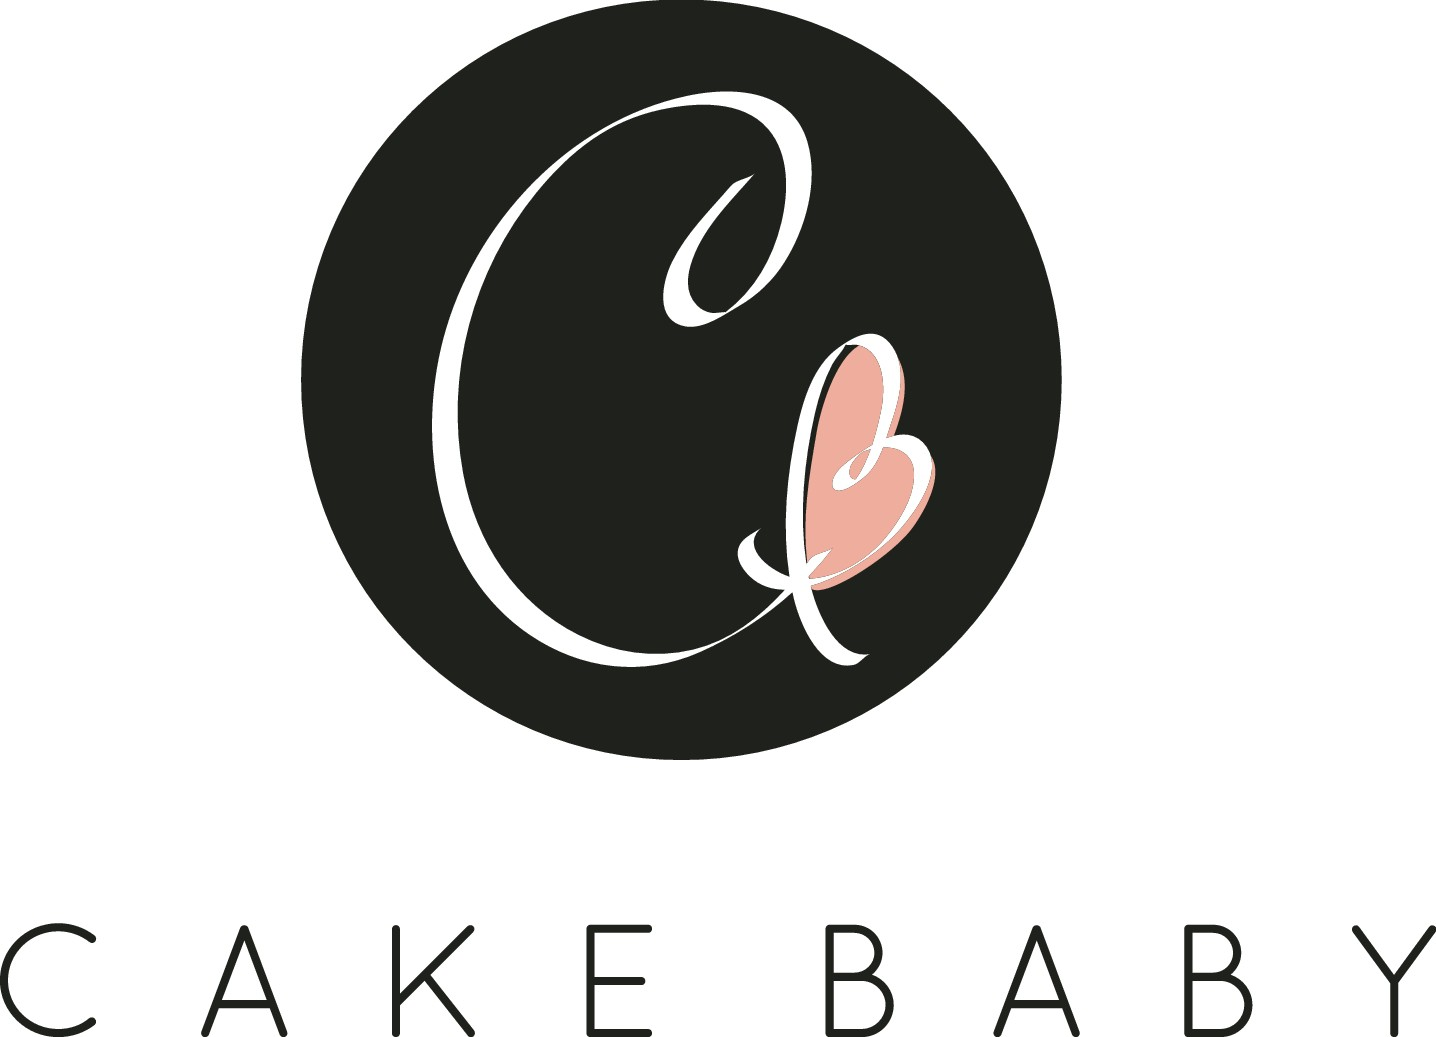 Creat a unique bold logo for Cake Baby